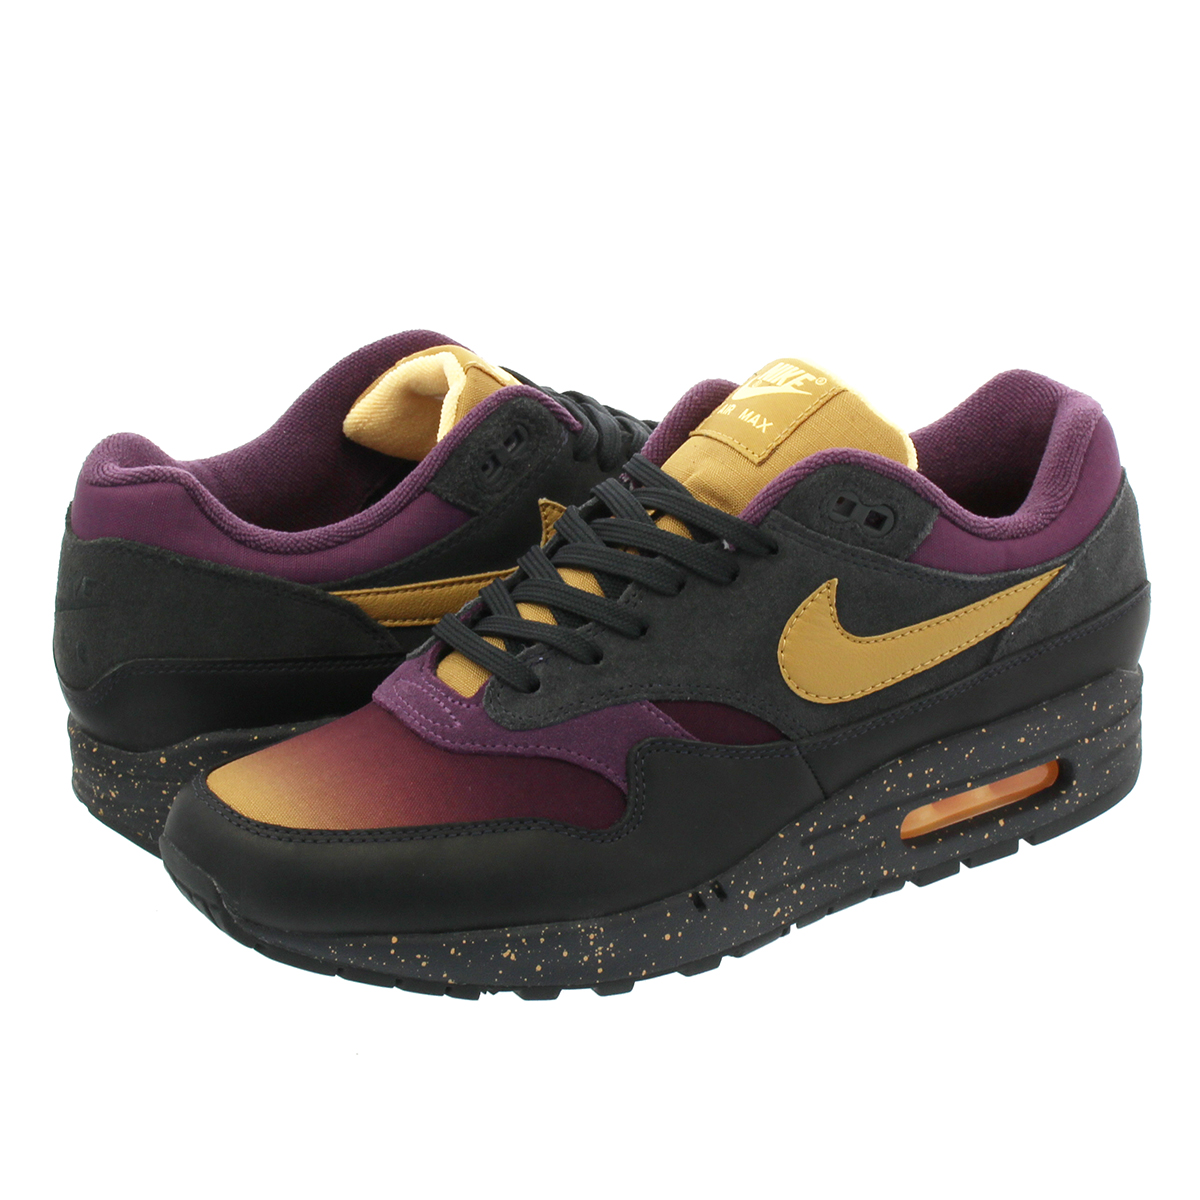 NIKE AIR MAX 1 PREMIUM Kie Ney AMAX 1 premium ANTHRACITEELEMENTAL GOLDPRO PURPLE